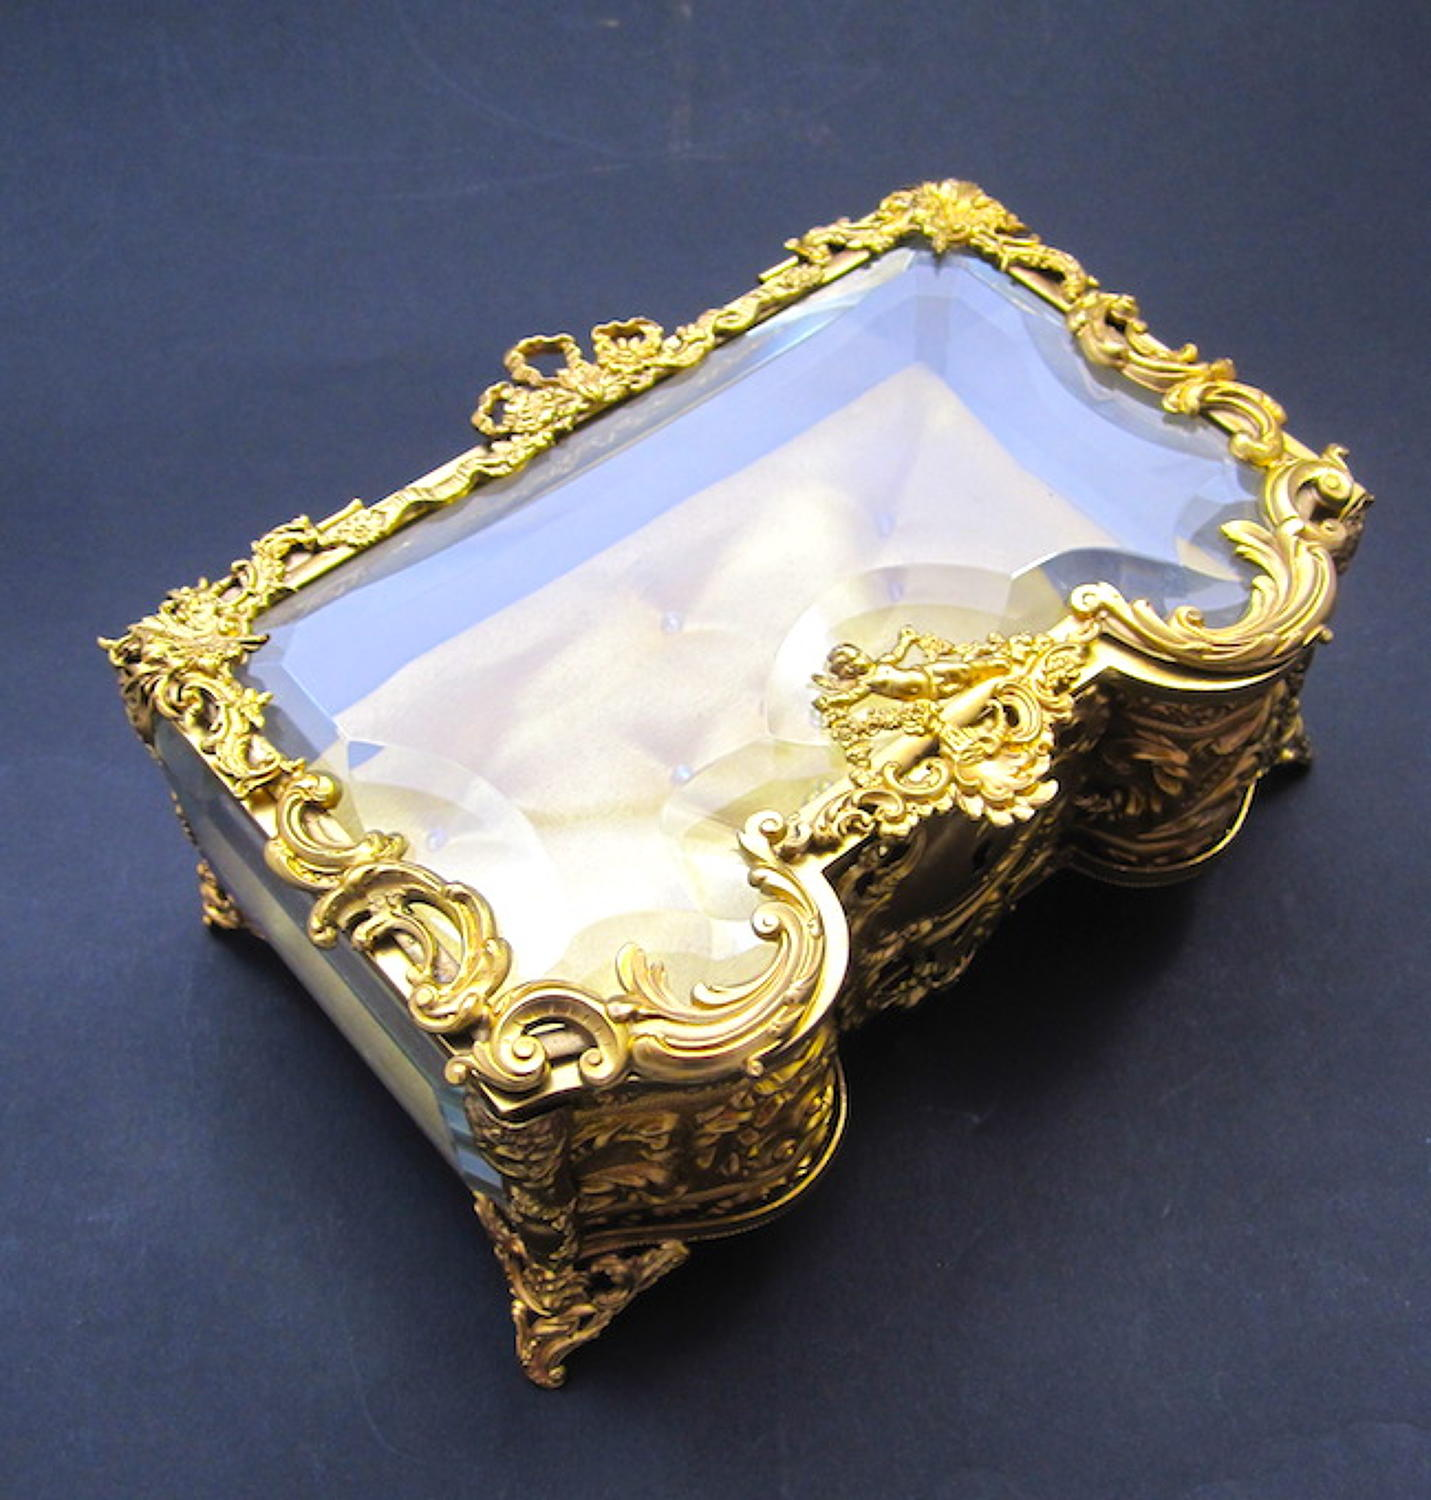 Antique French Rococo Cherub Jewellery Box